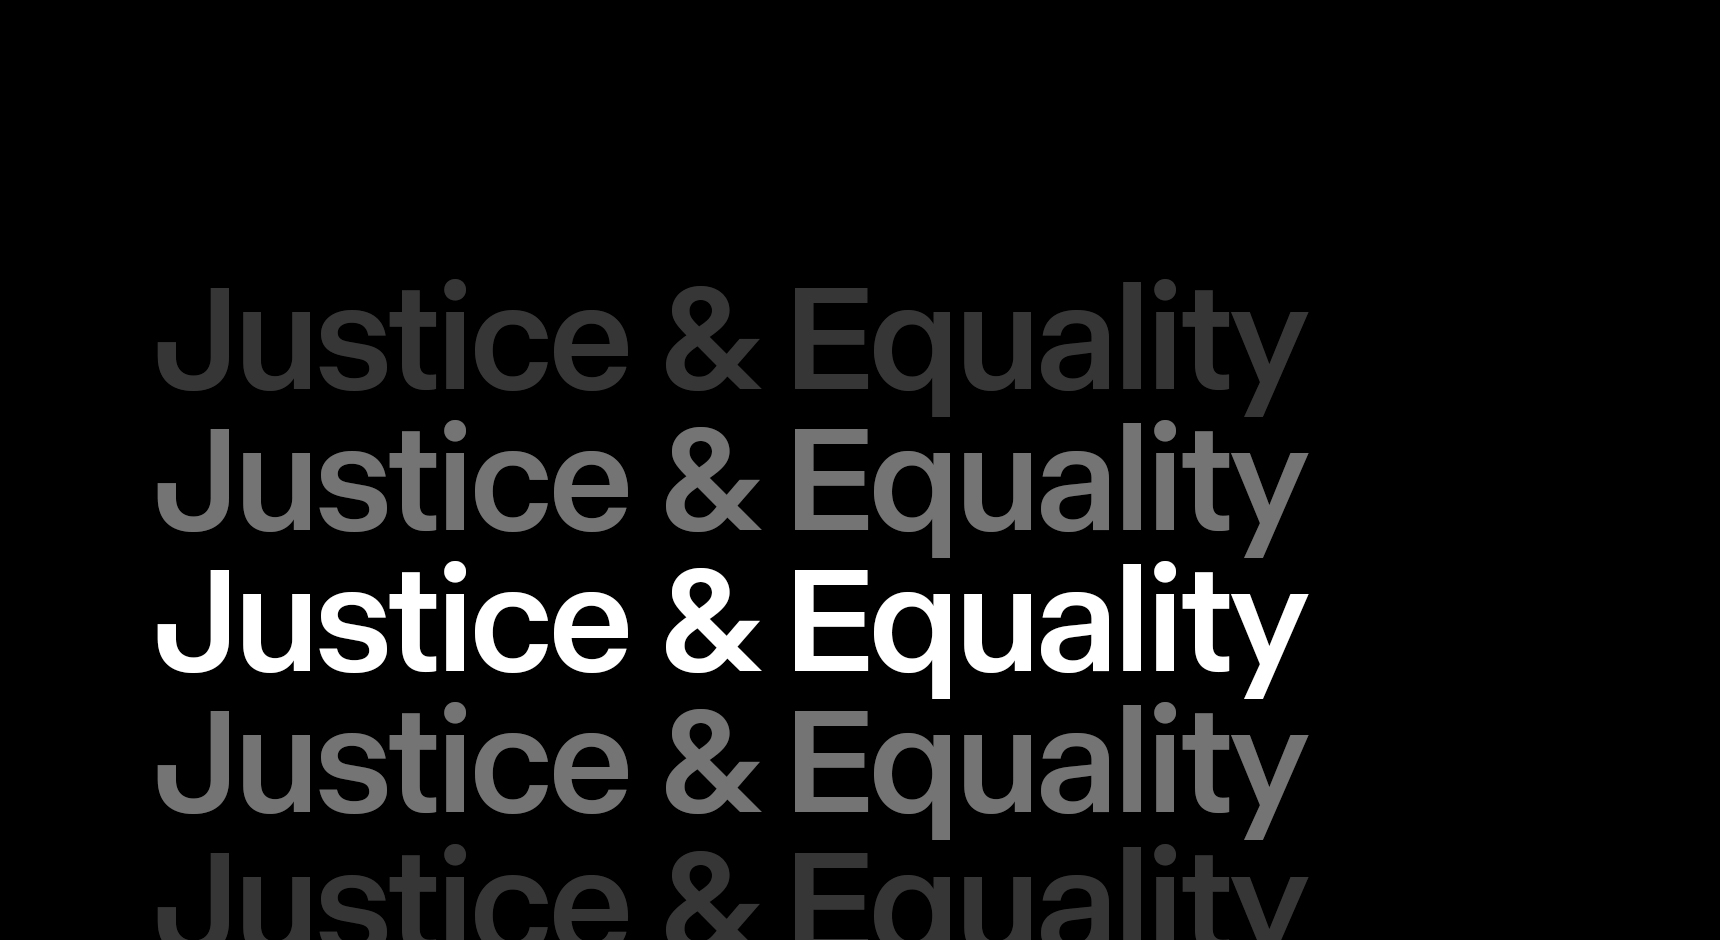 Justice & Equality